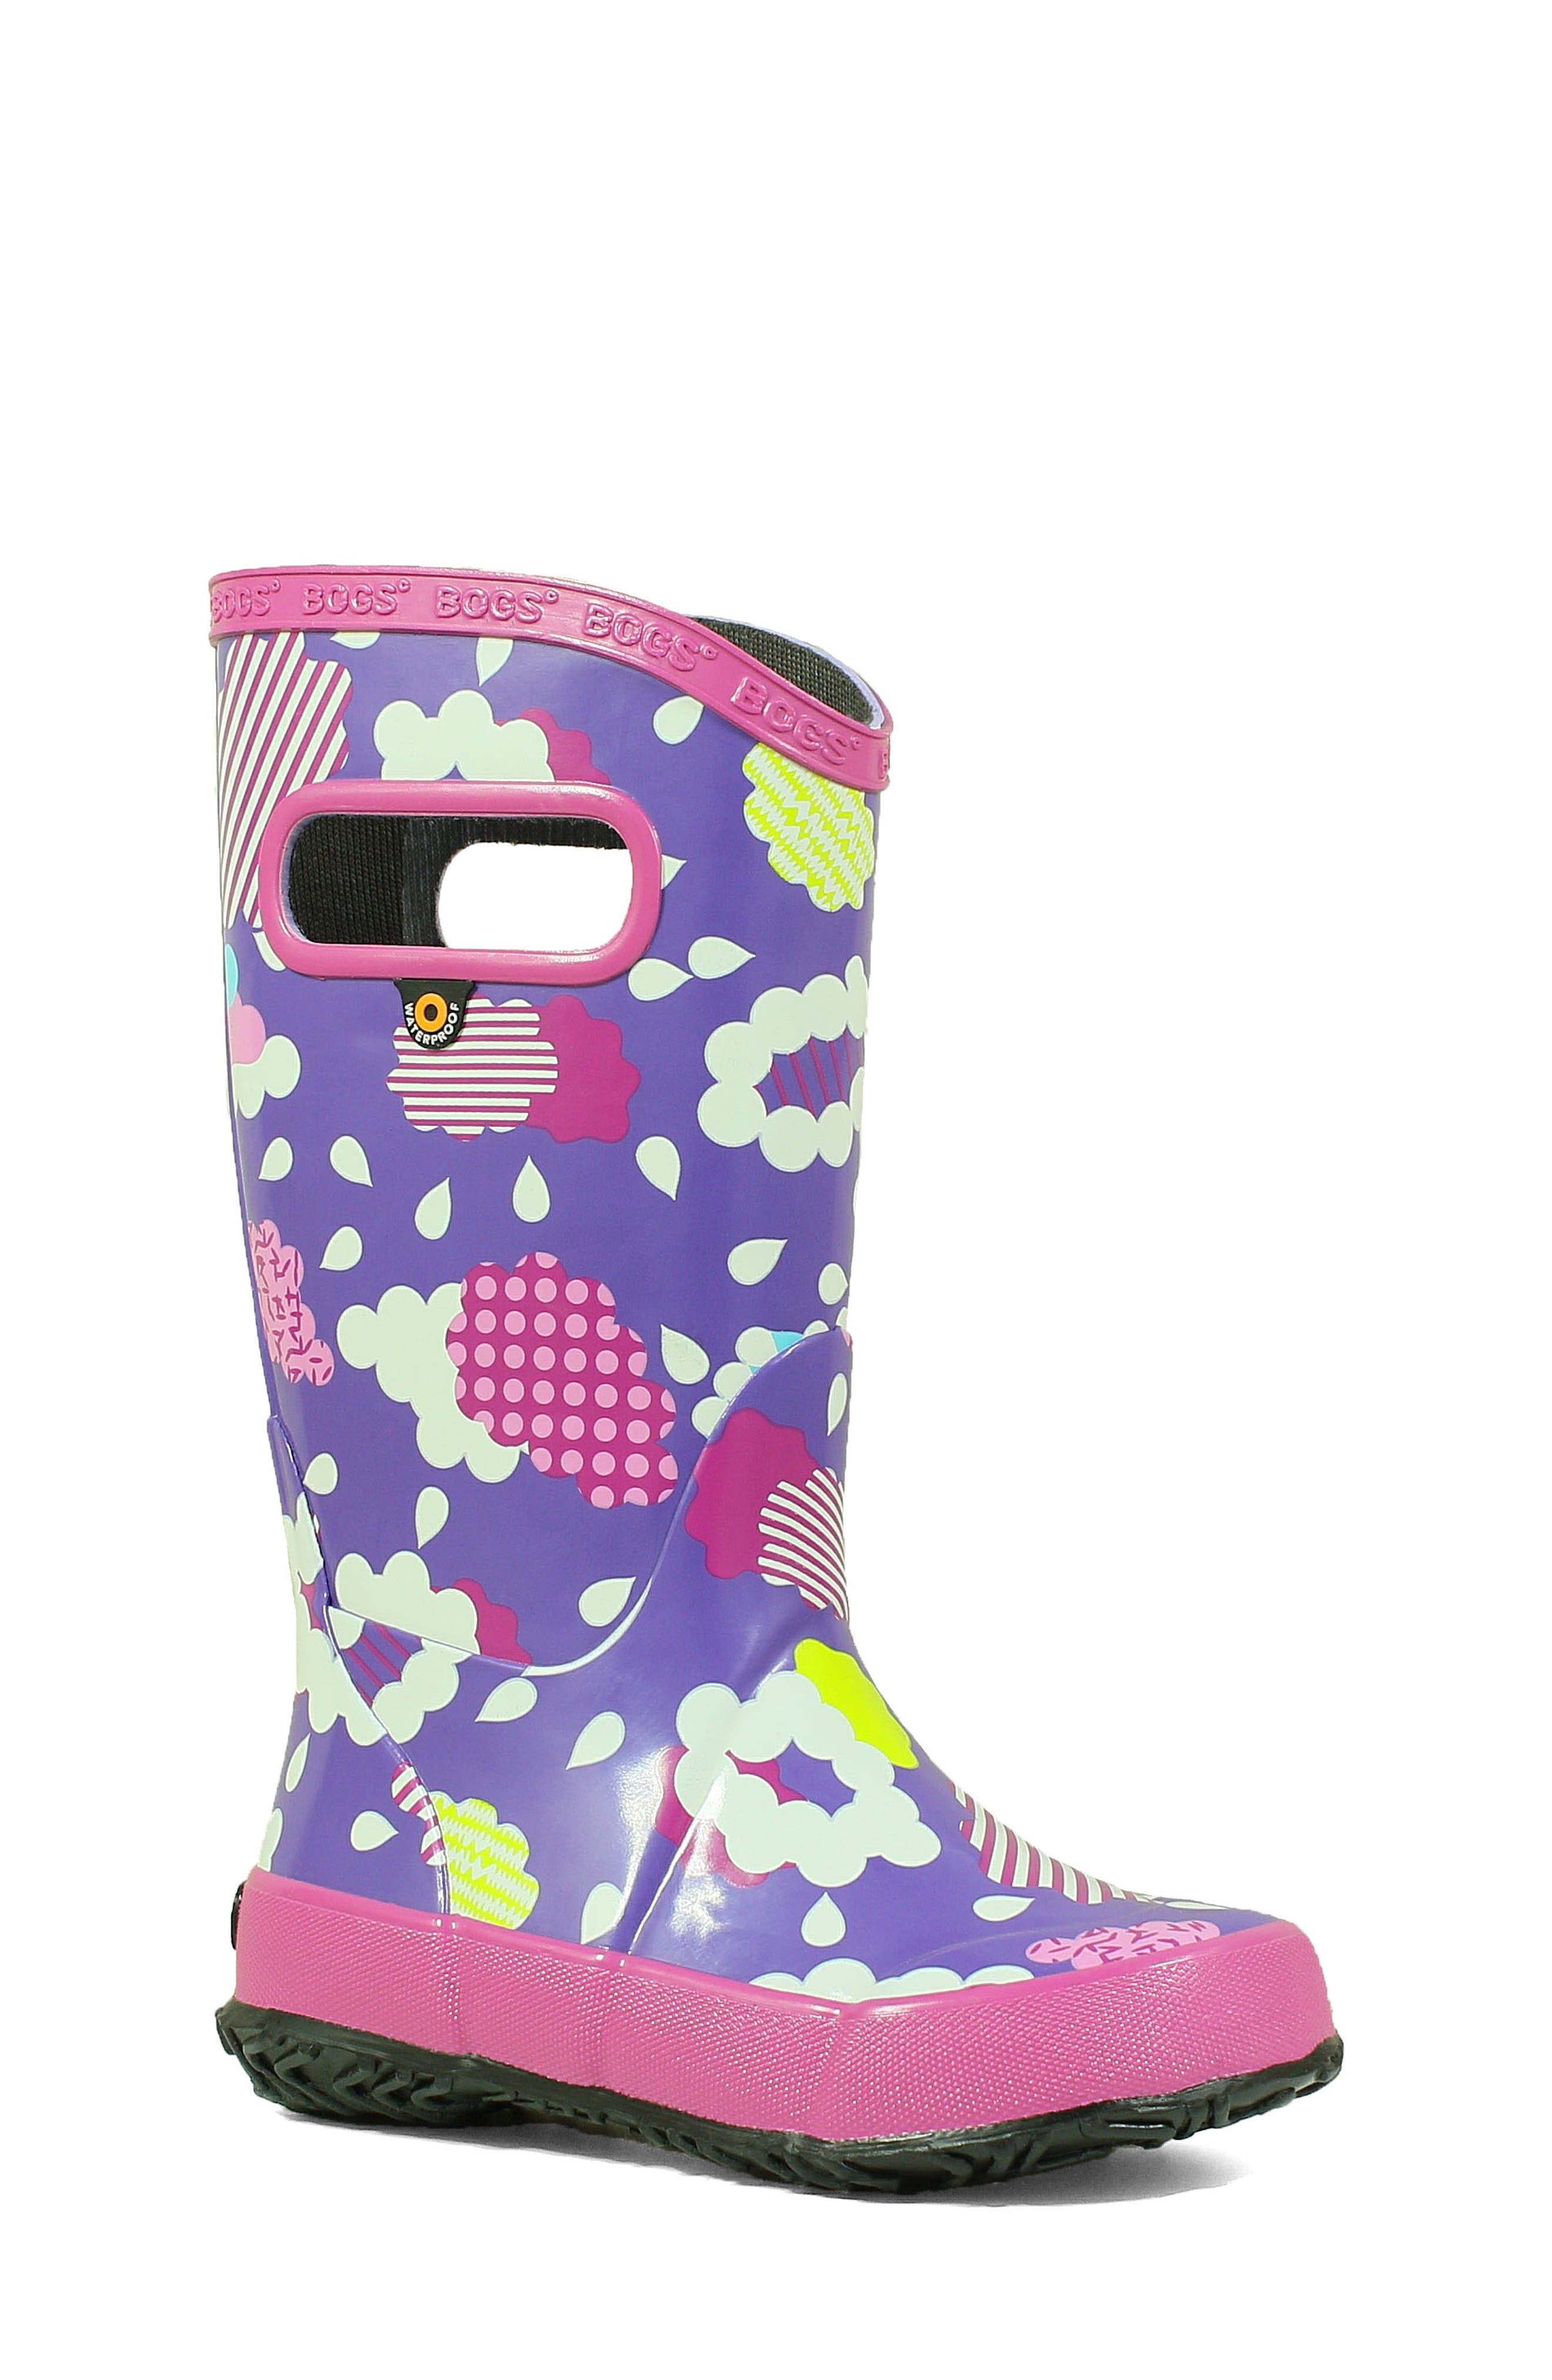 Bogs Clouds Waterproof Rain Boot